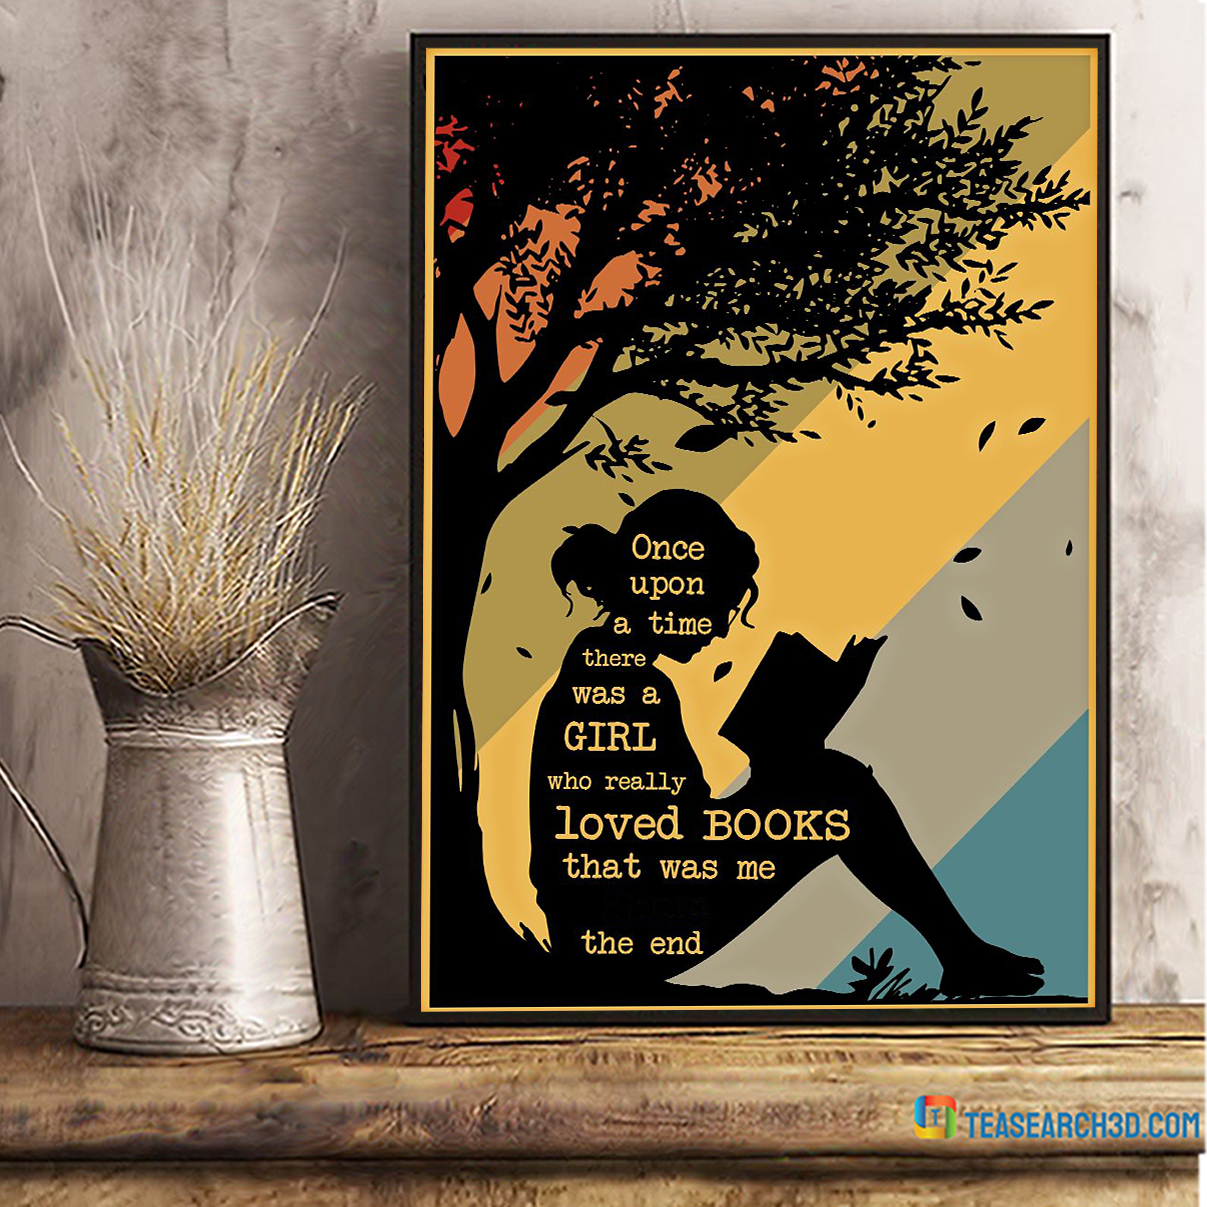 Personalized custom name once upon a time there was a girl who really loved books poster A2